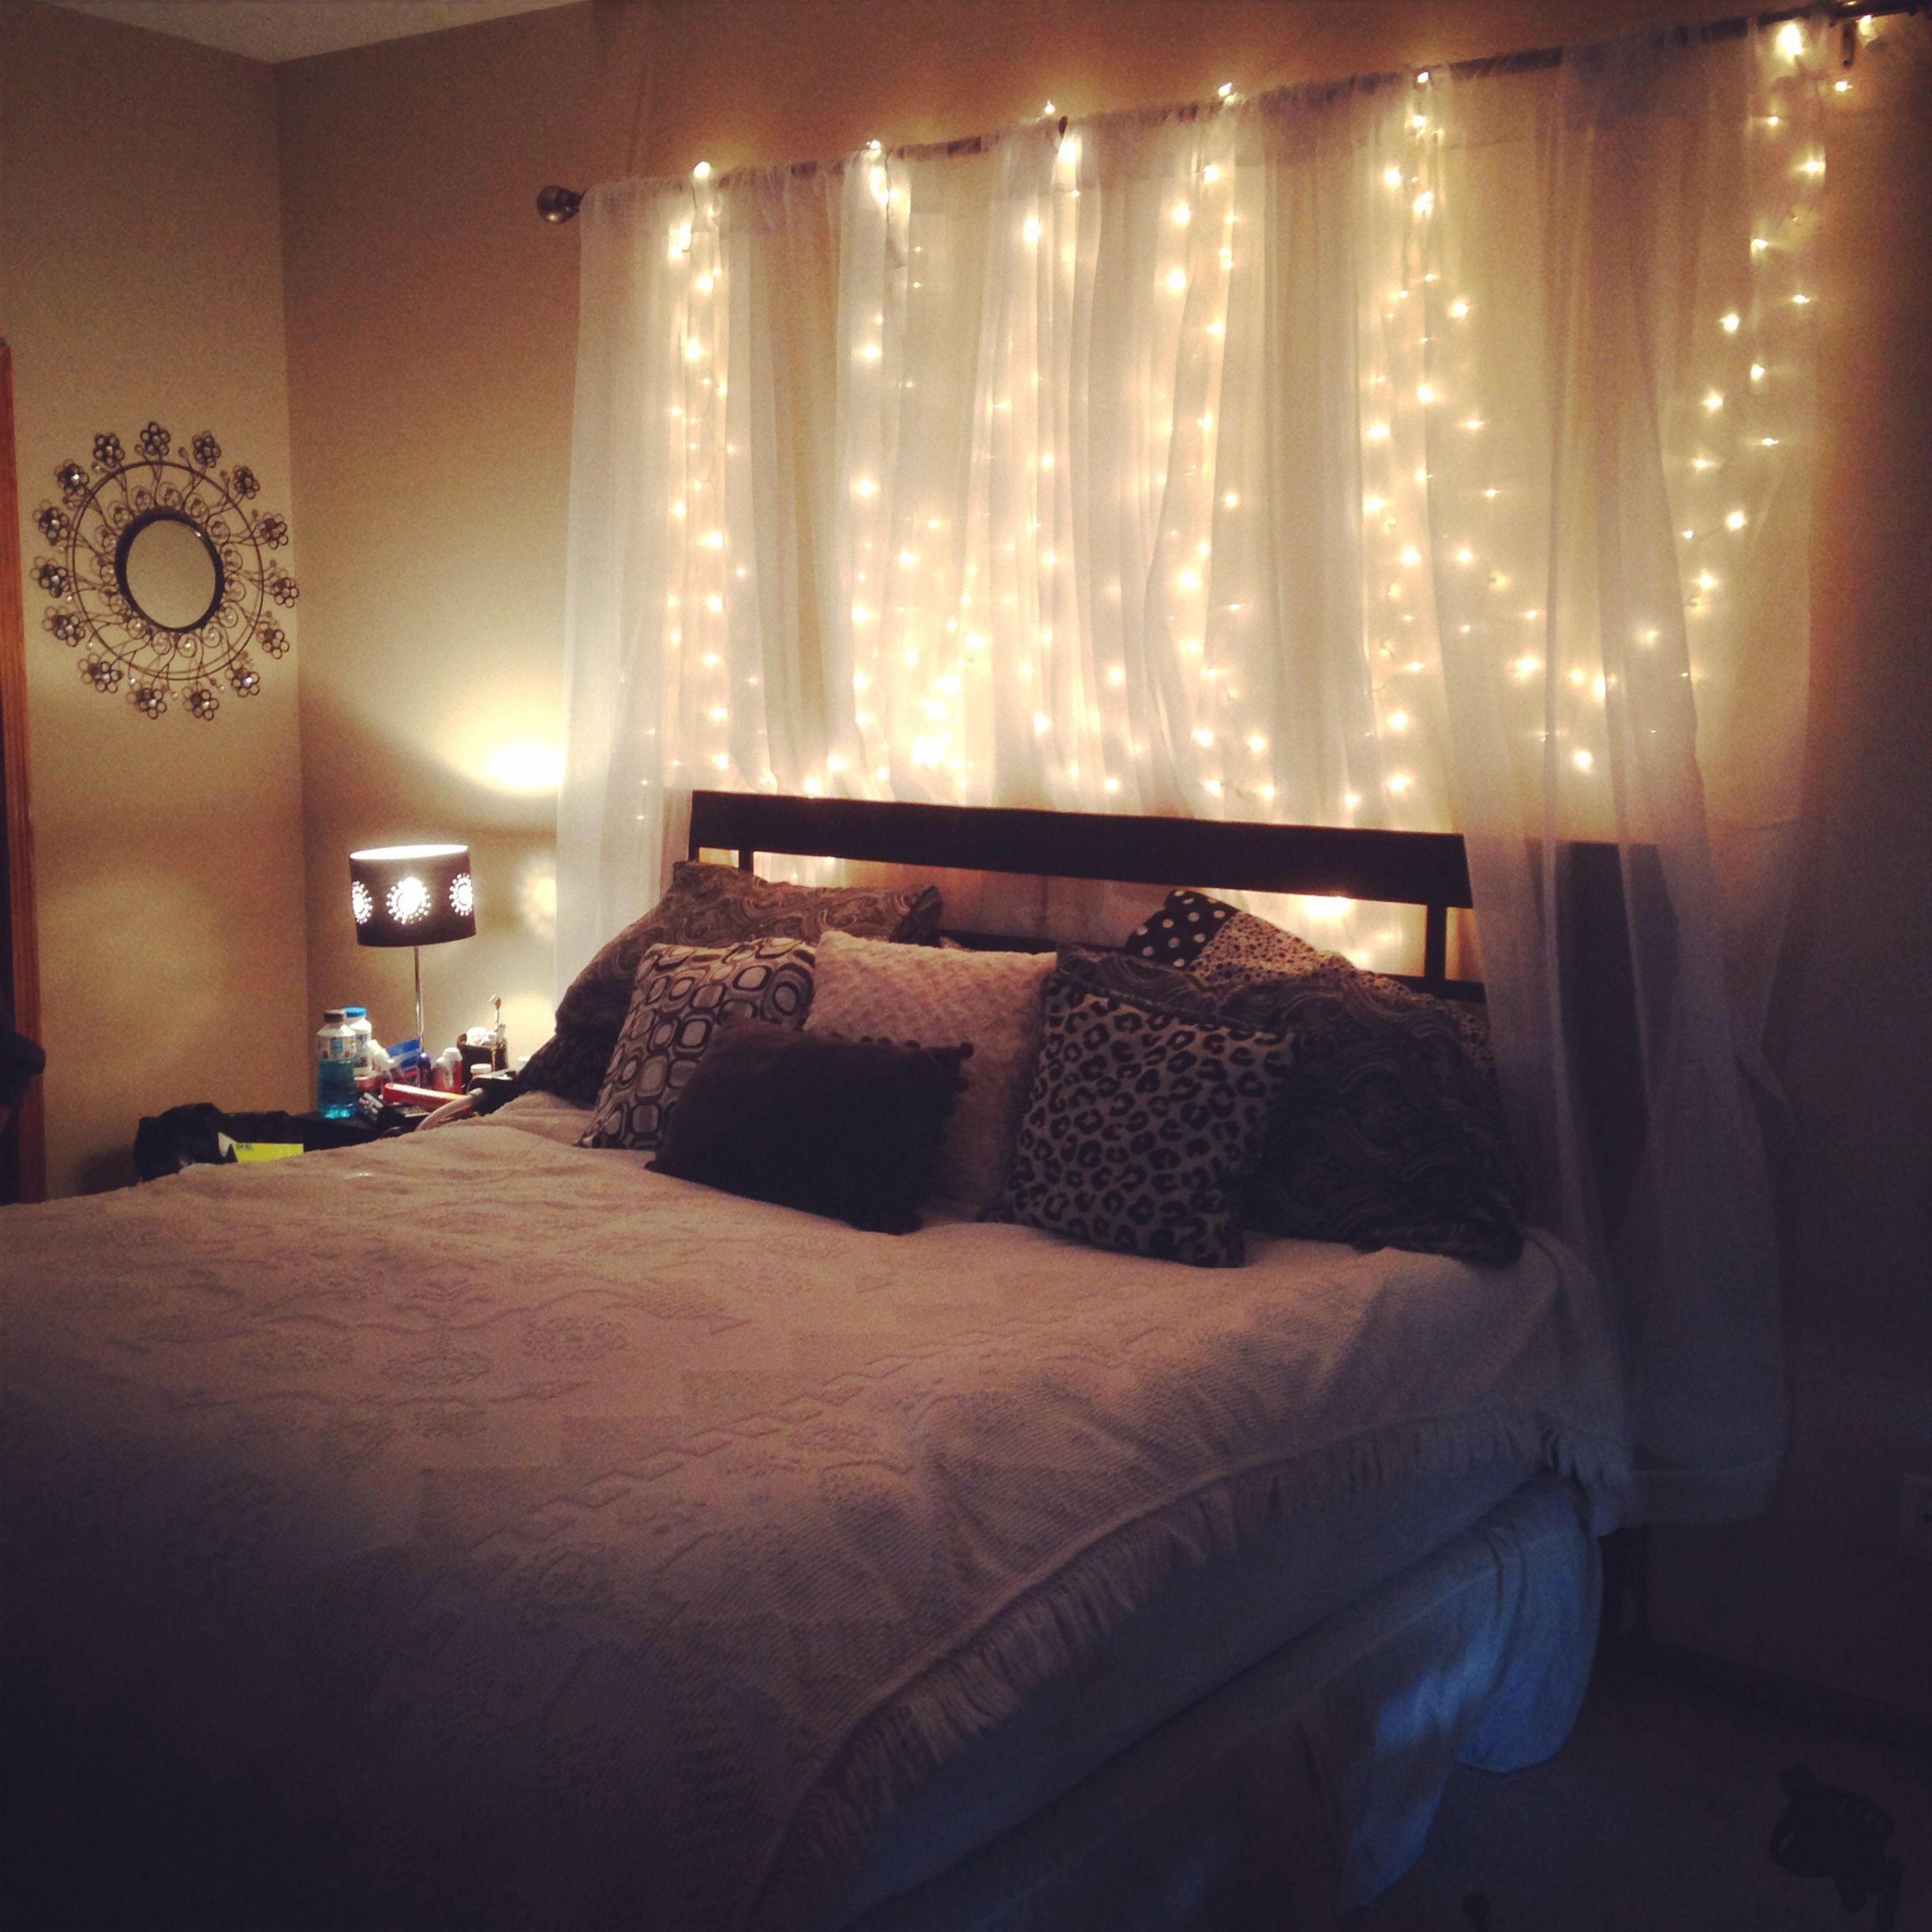 Homemade Headboard Curtains Lights Weekend Project